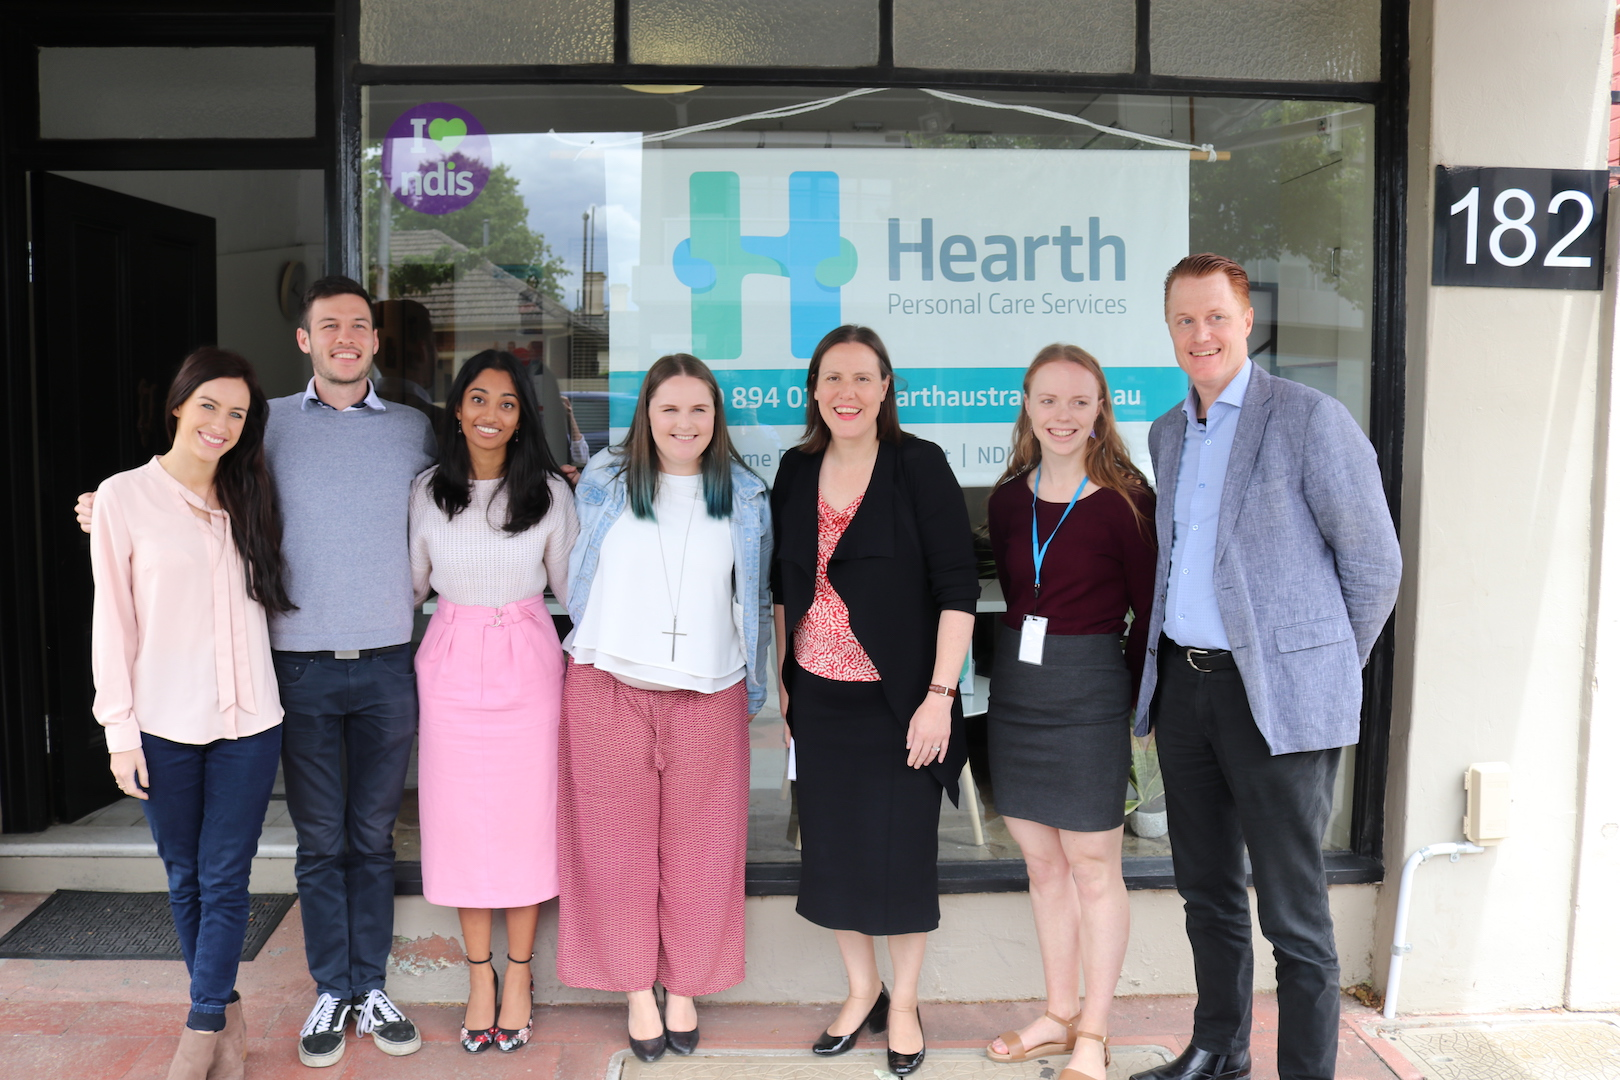 The Hearth team welcomes Kelly O'Dwyer